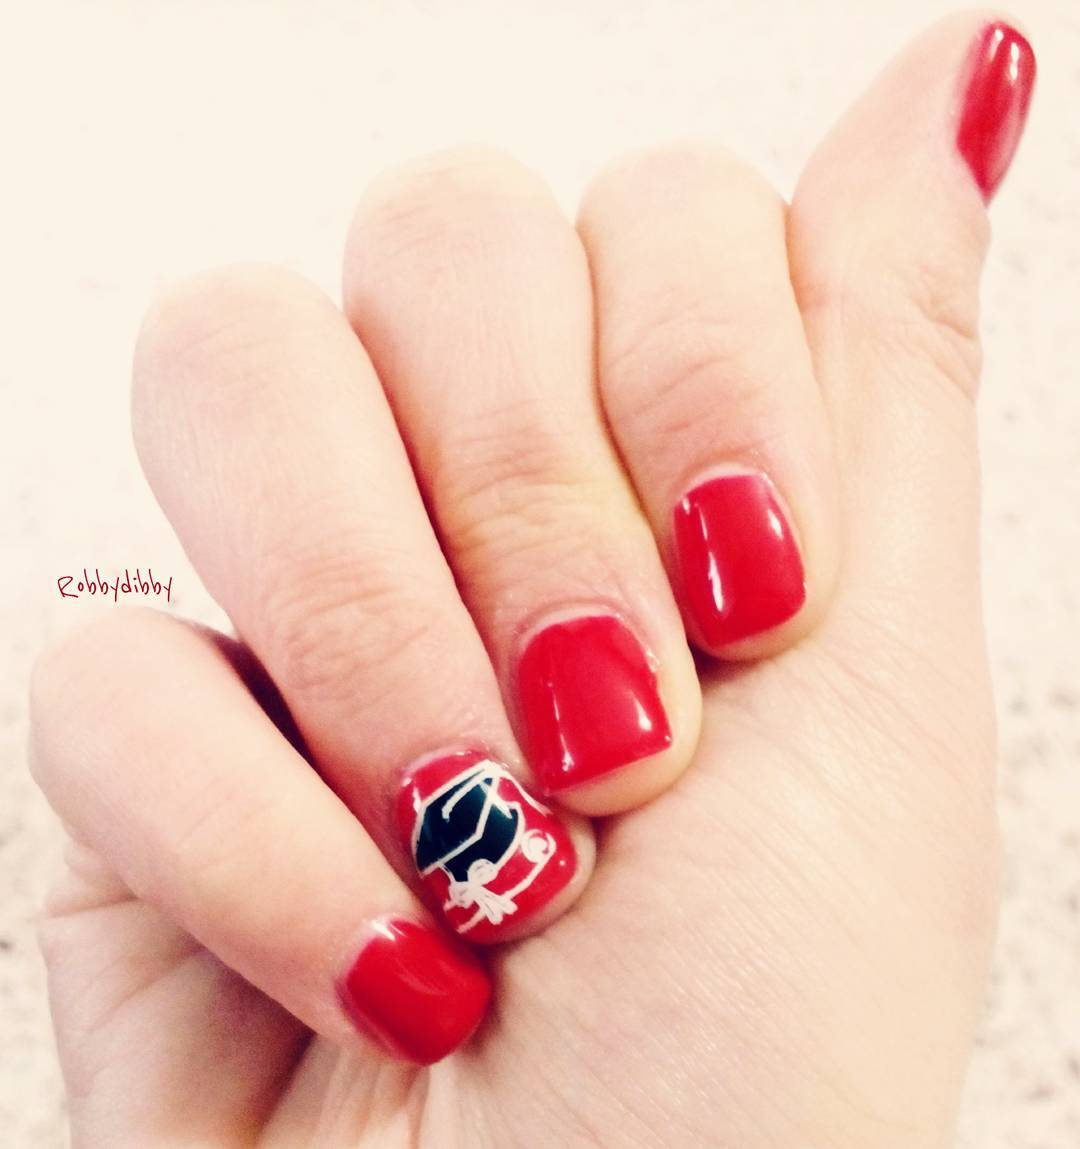 Short red nails with graduation cap. Pic by robbydibby